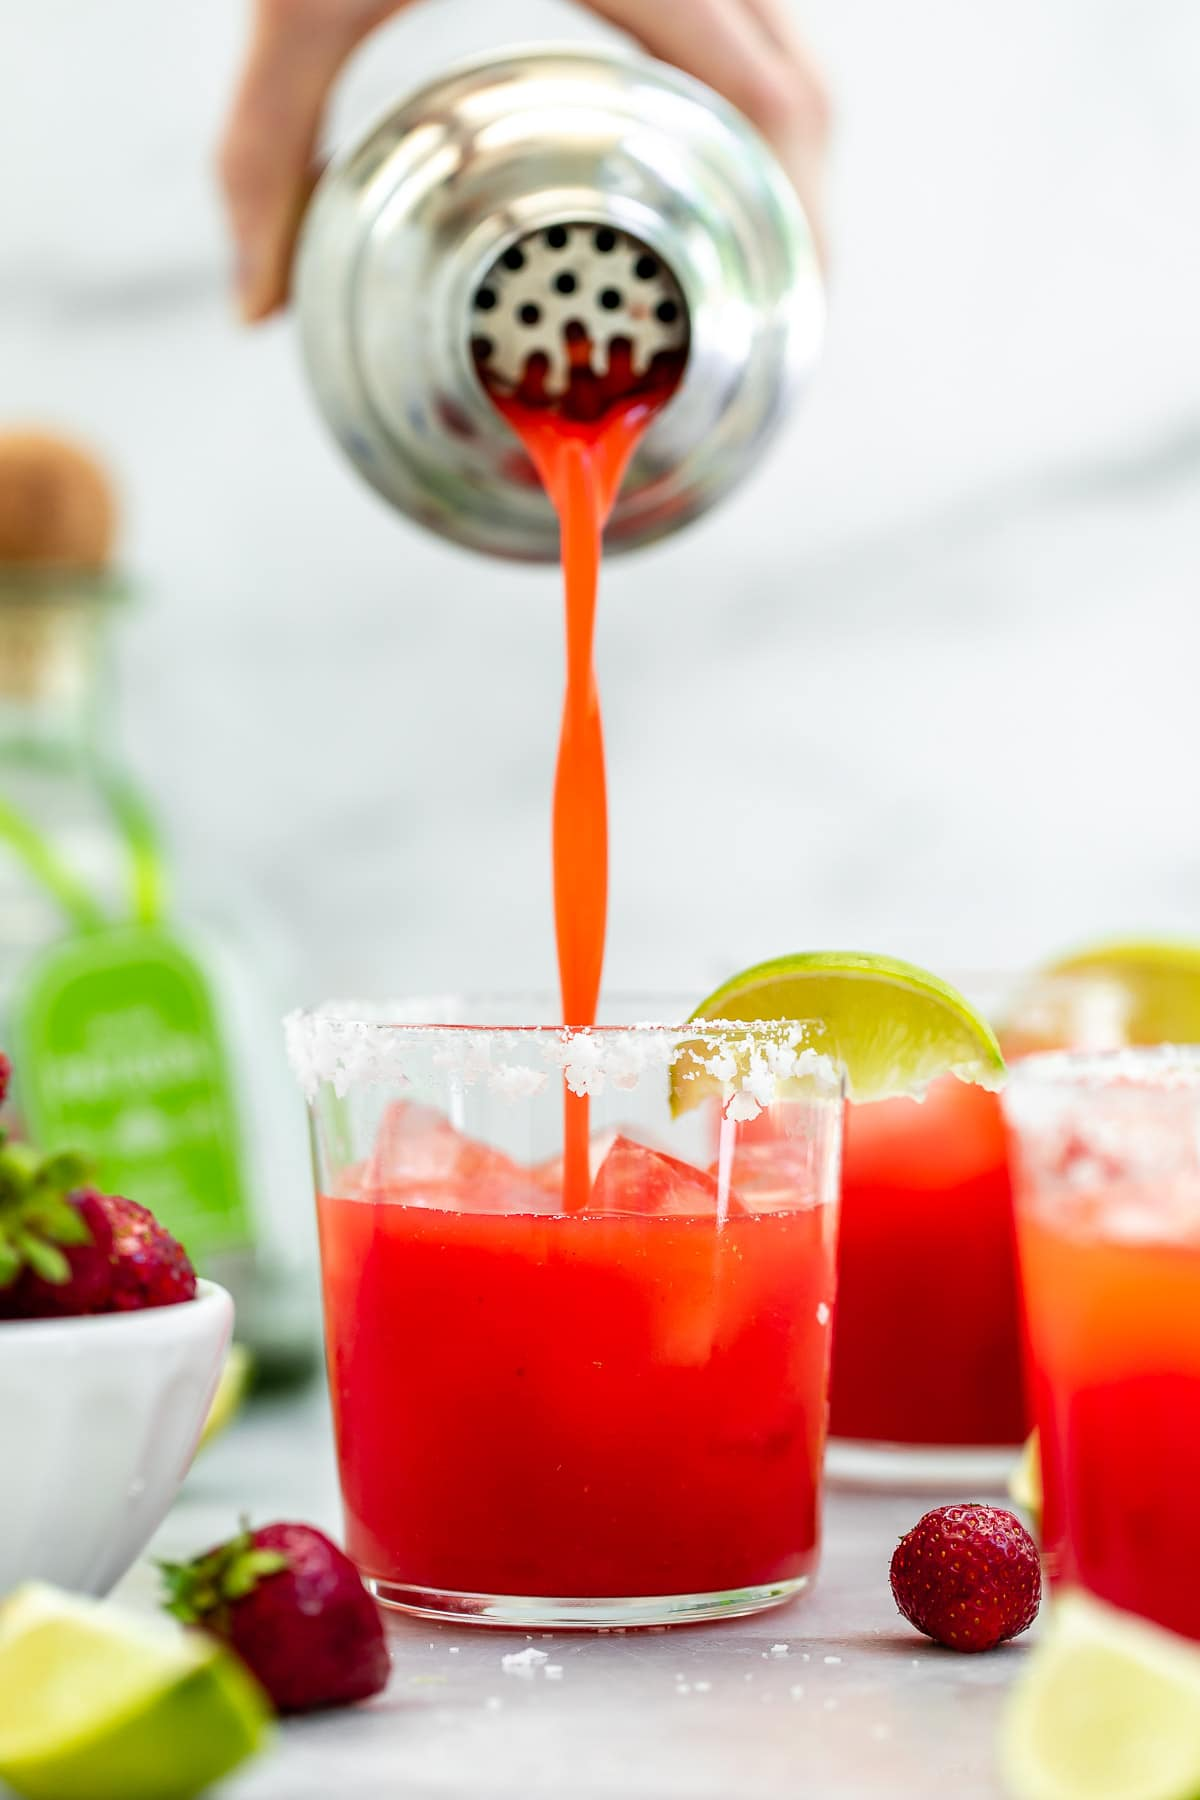 Pouring the margarita into three glasses.